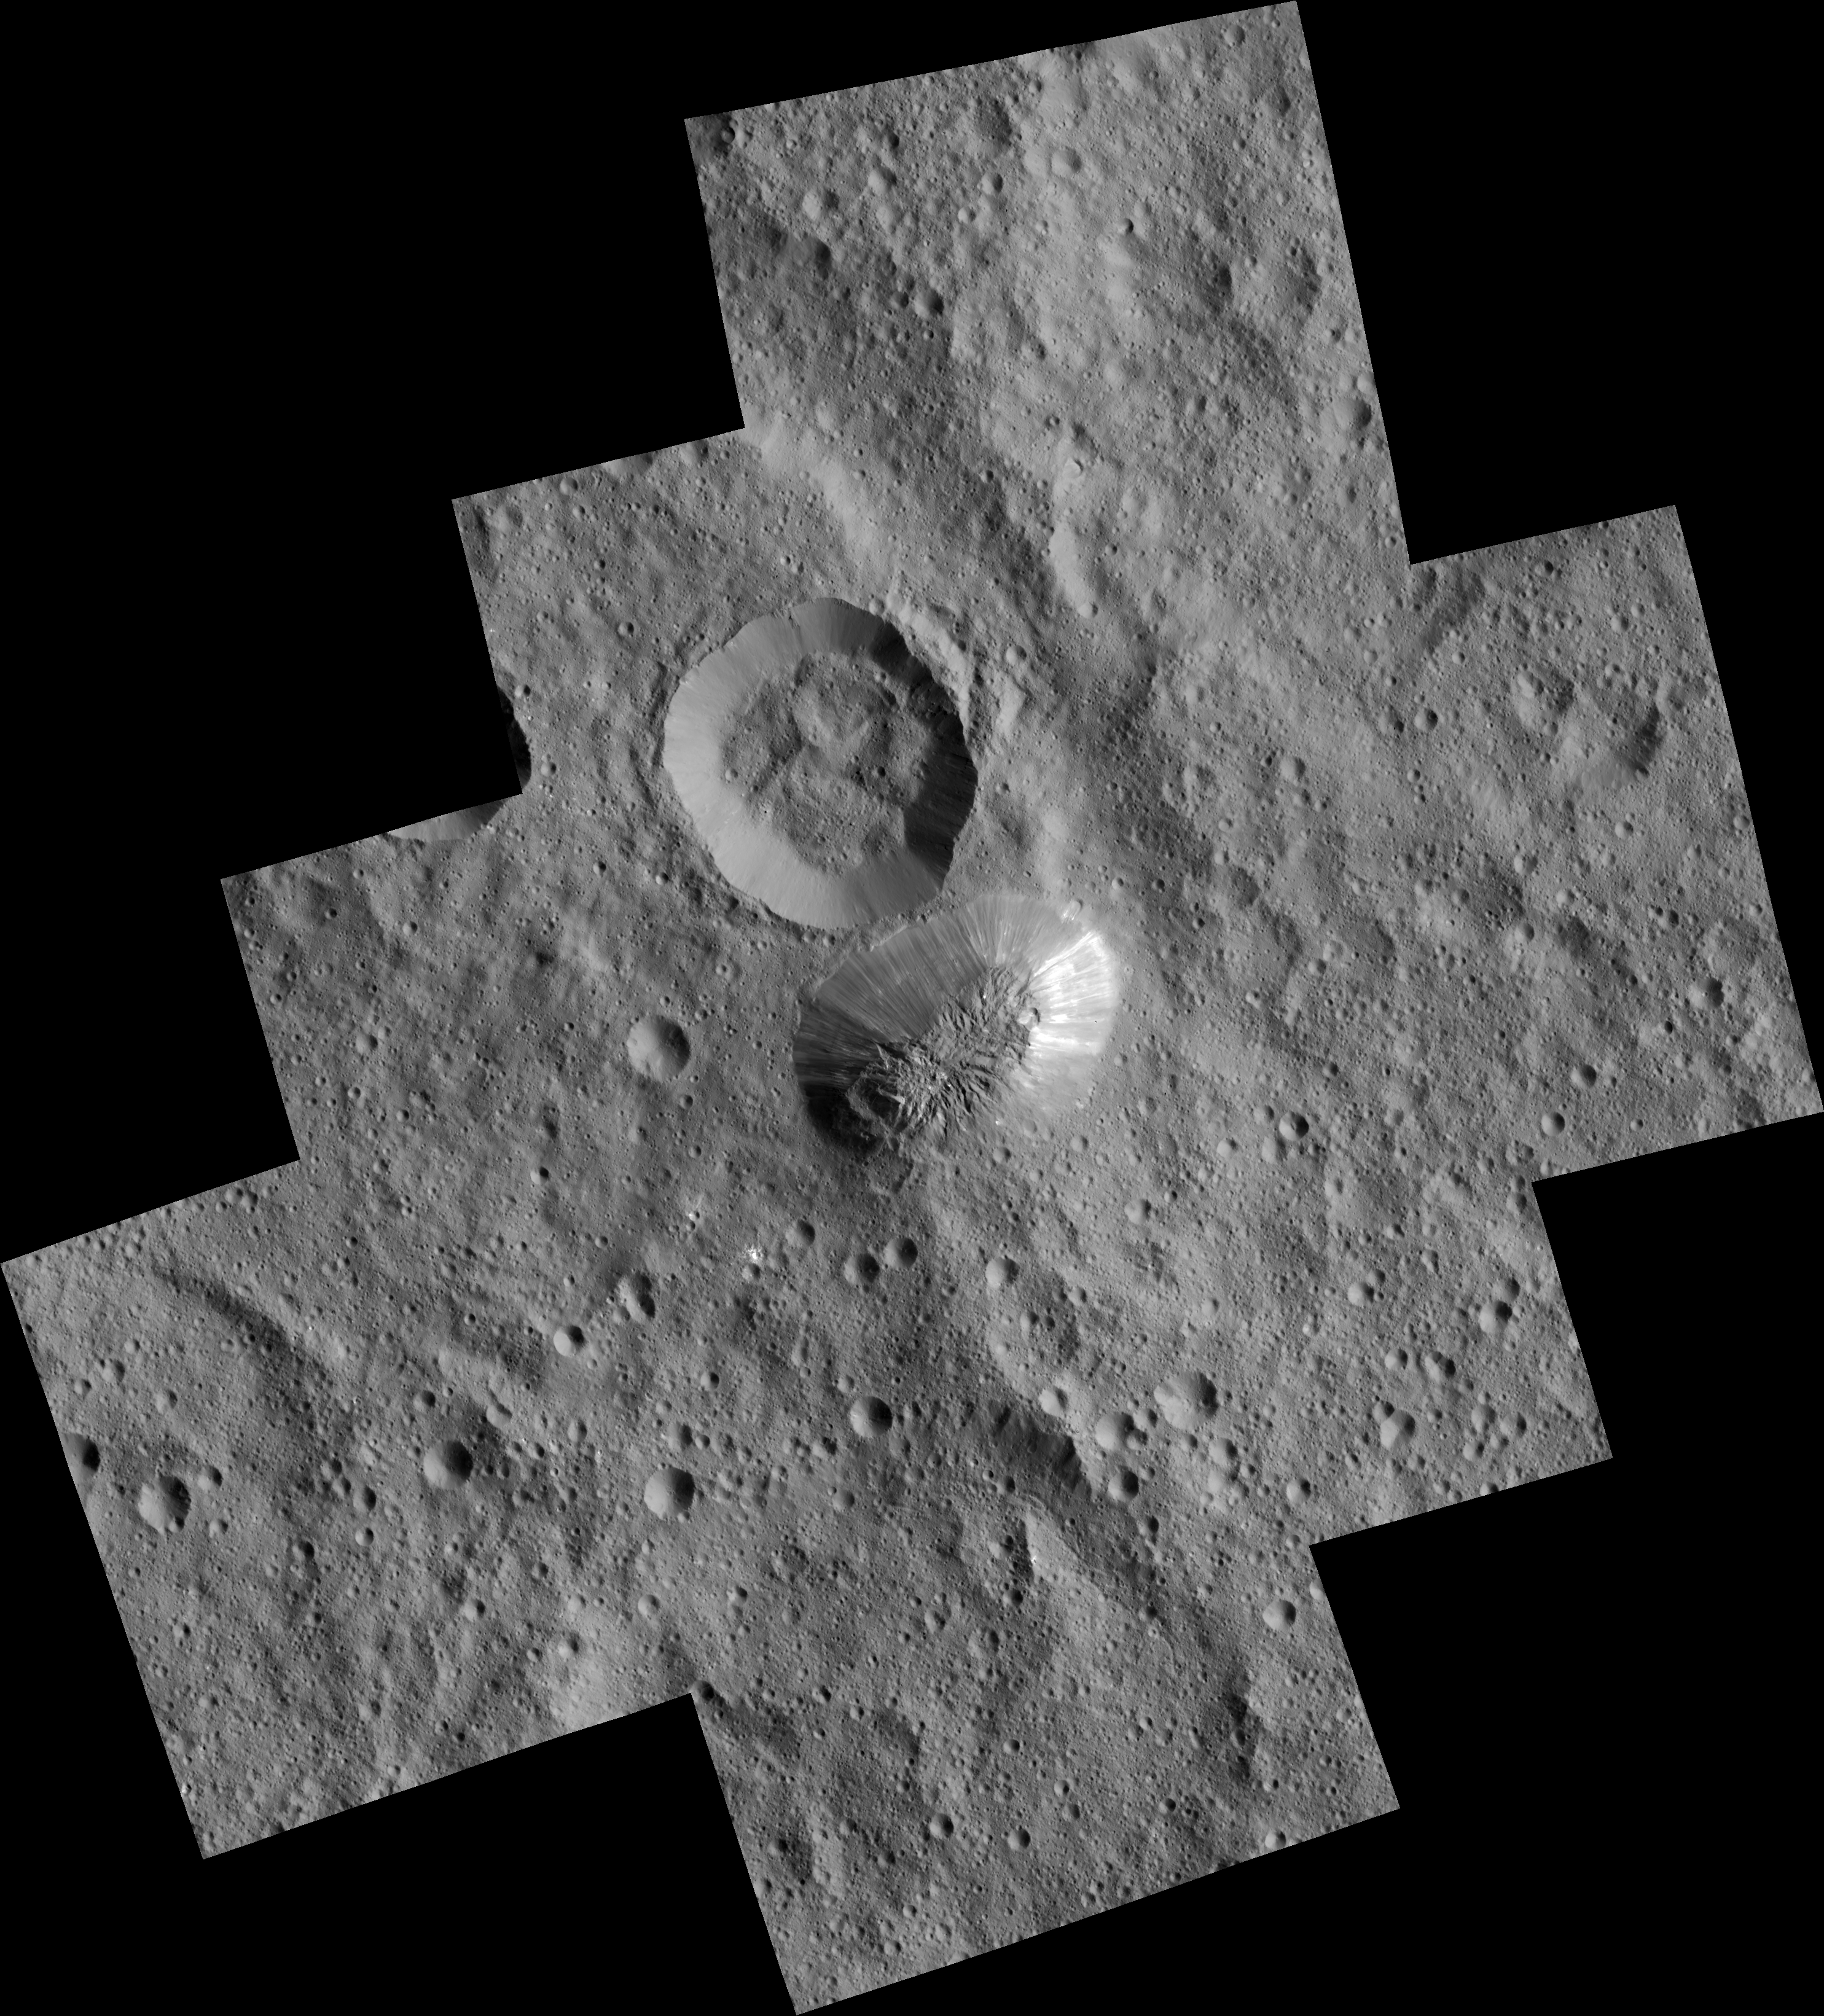 Ahuna Mons on Ceres Seen From Low-Altitude Mapping Orbit